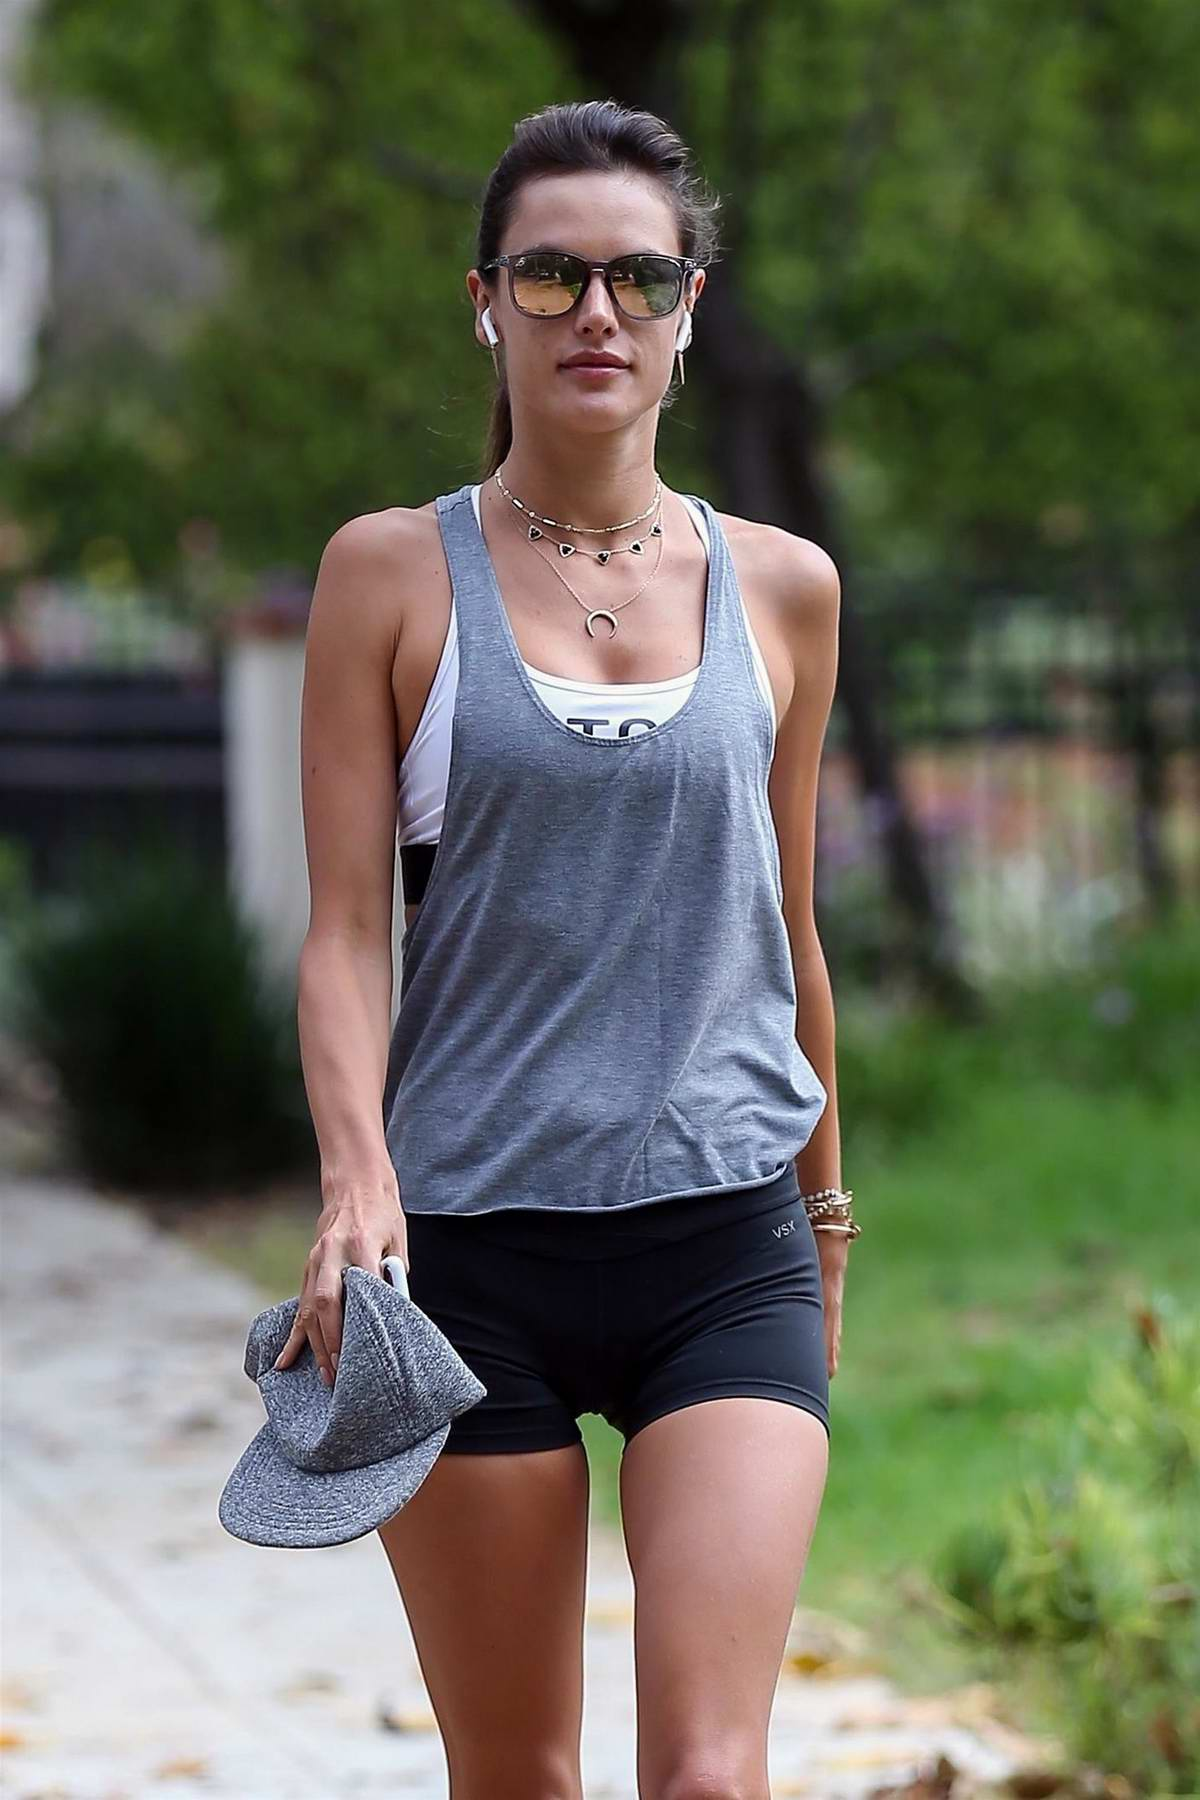 Alessandra Ambrosio out for an outdoor cardio in Brentwood, Los Angeles